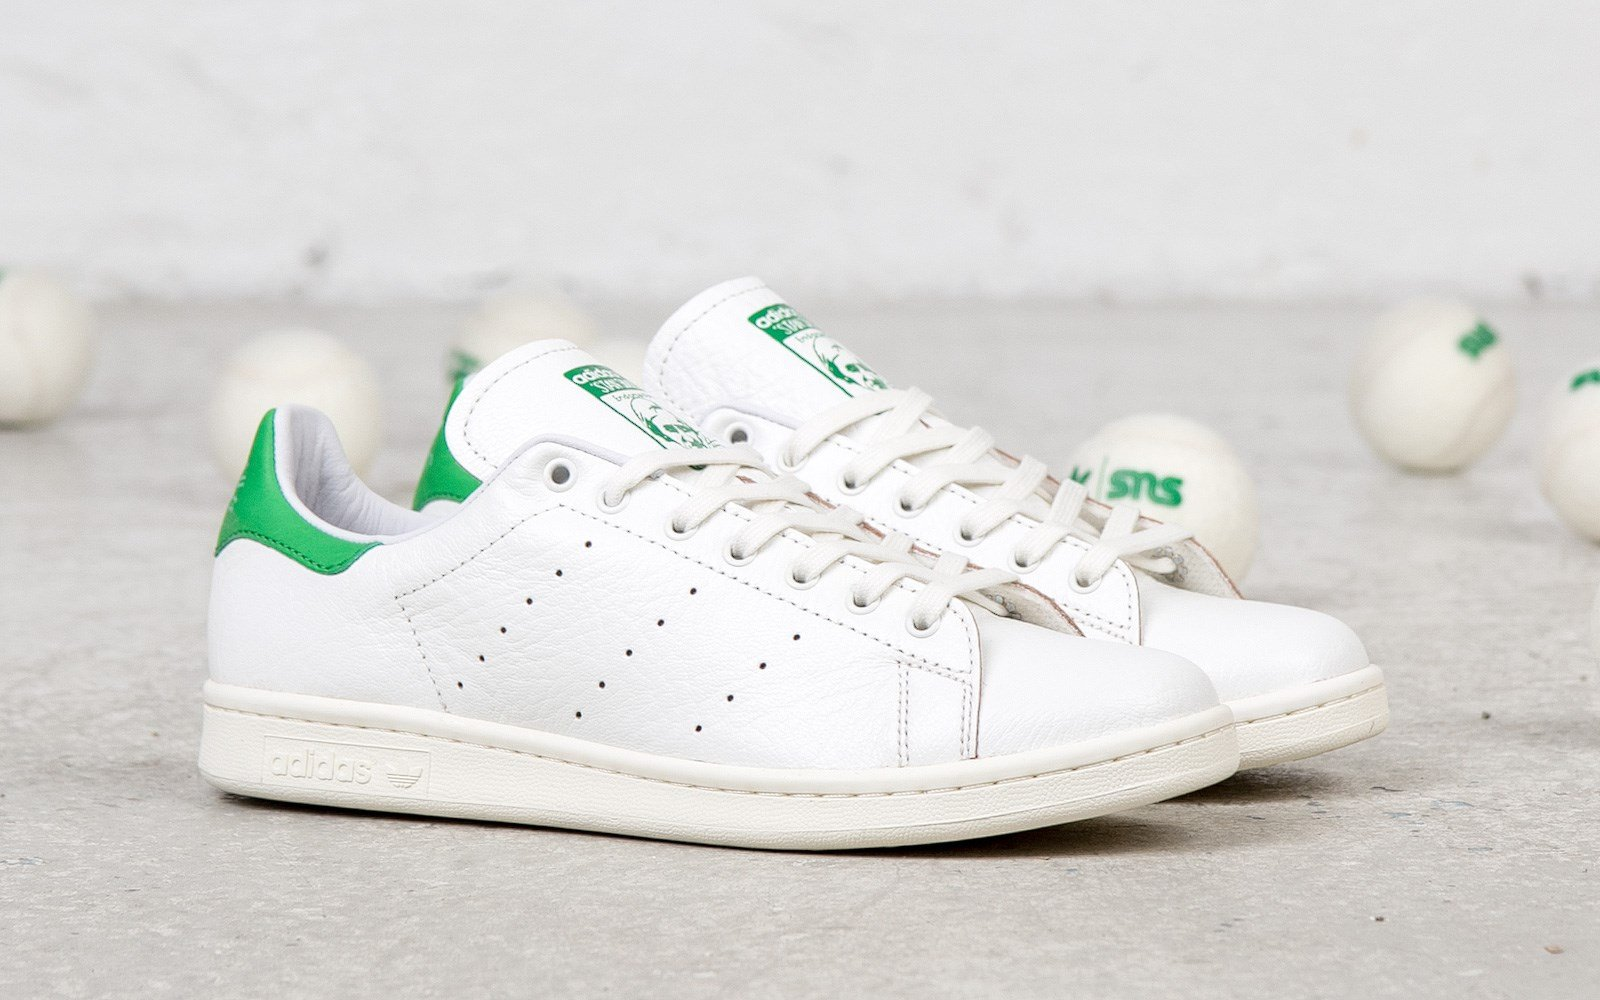 adidas Stan Smith - Consortium - M22241 - Sneakersnstuff  65fb9fe6a